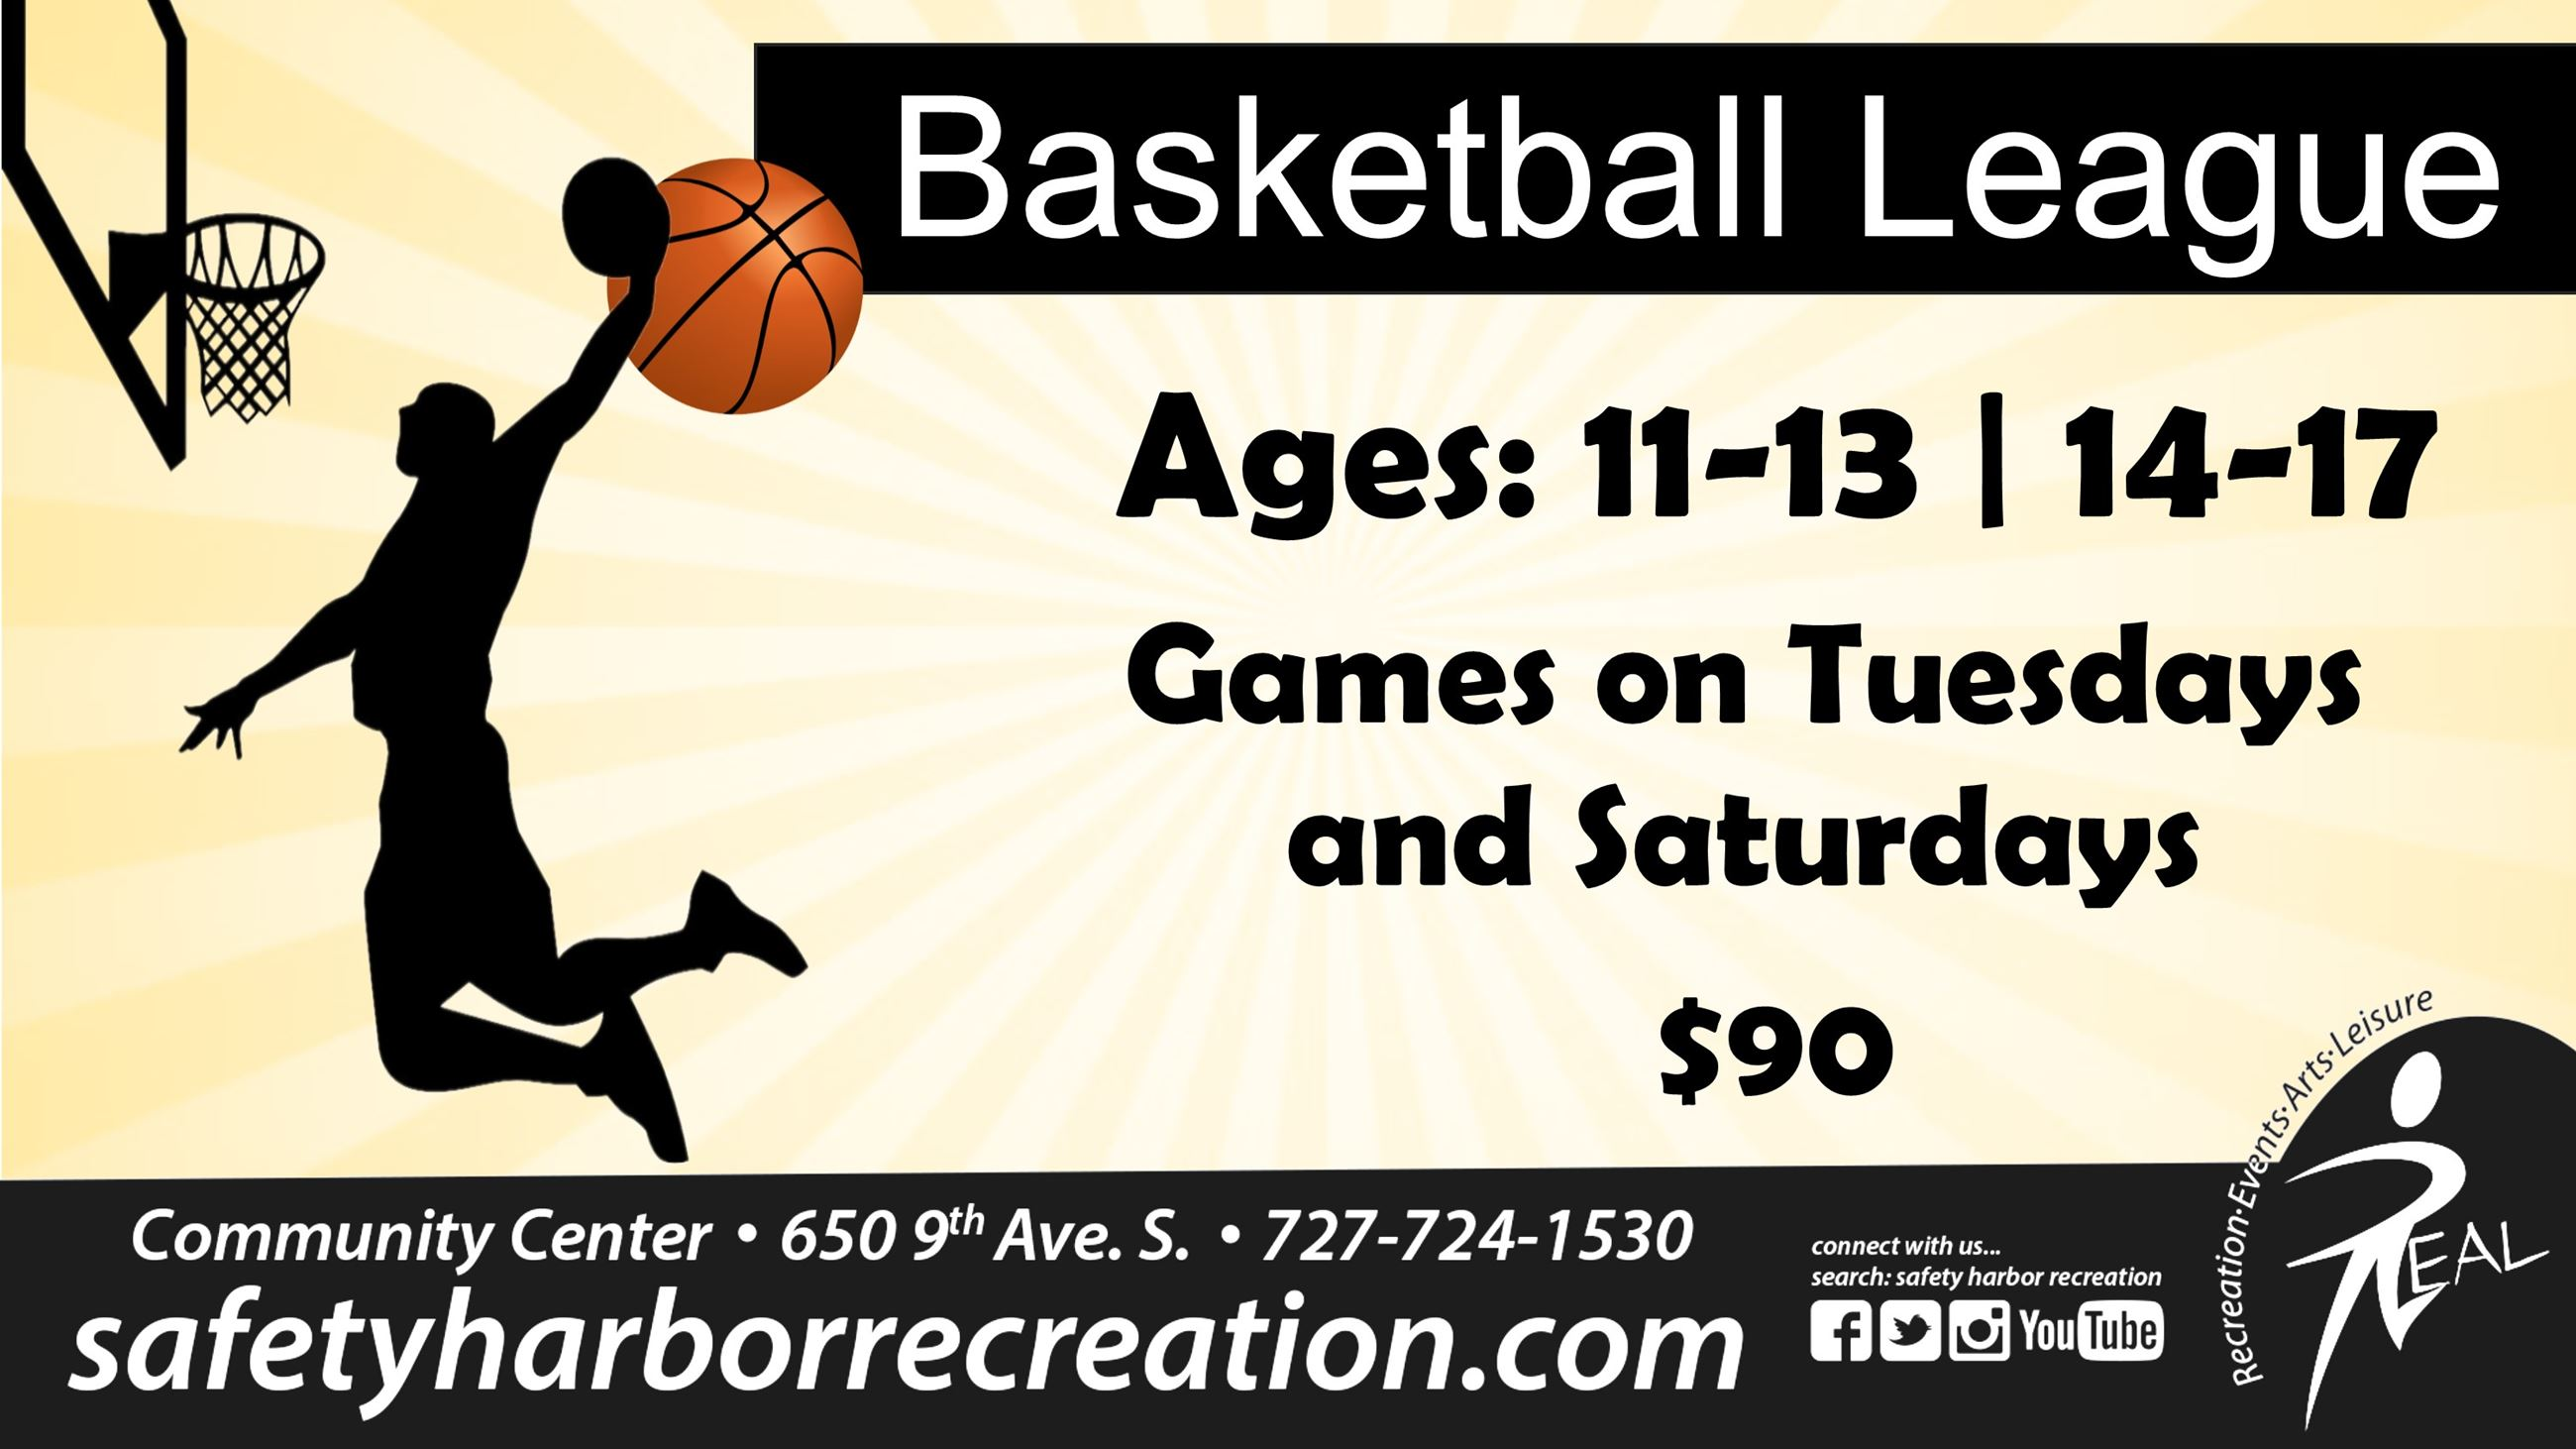 Basketball League, Ages 11-13 or 14-17. Games on Tuesdays and Saturdays. $90. Community Center